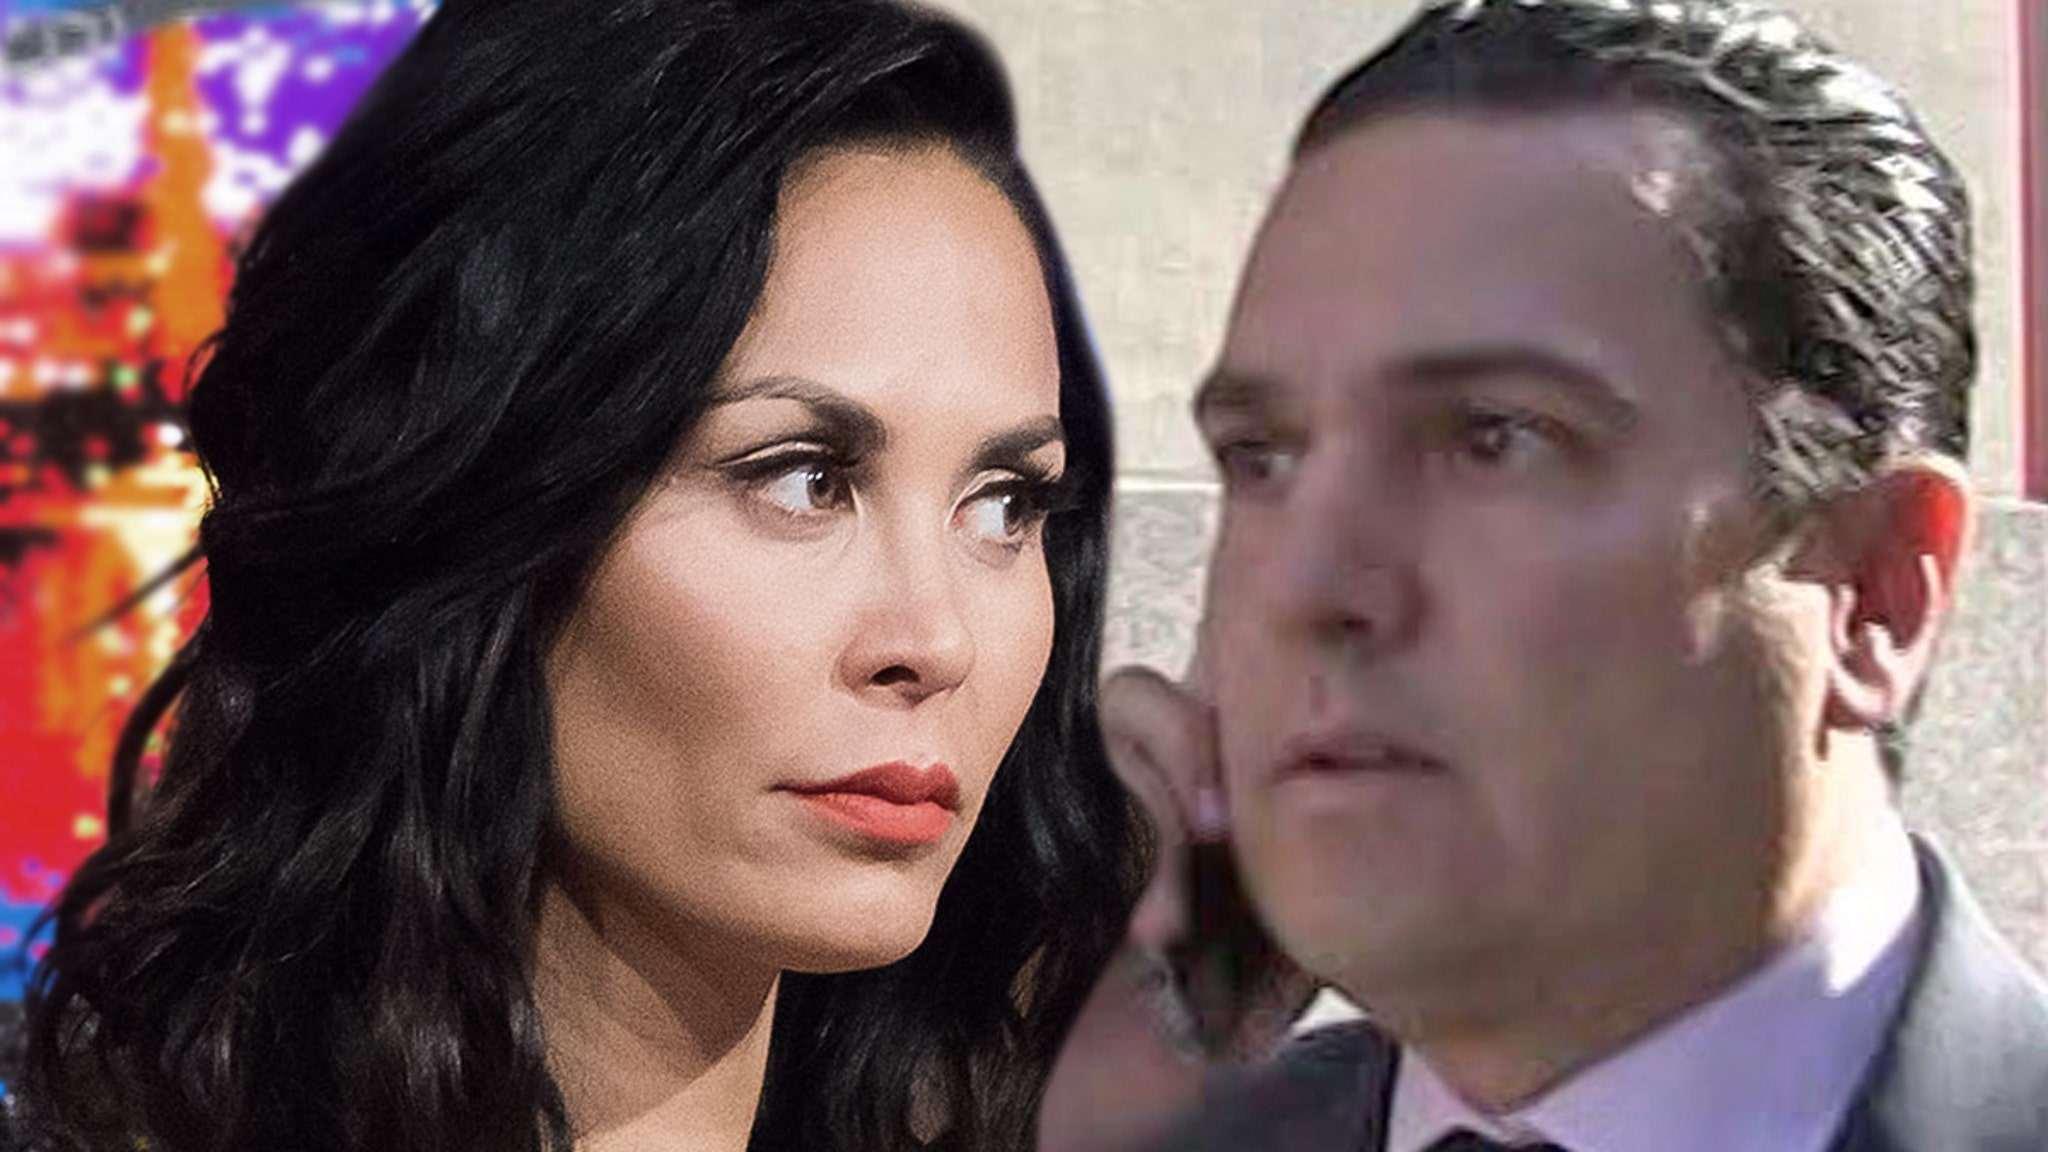 'RHONY' Star Jules Wainstein Accused of Abusing Drugs in Domestic Violence Case